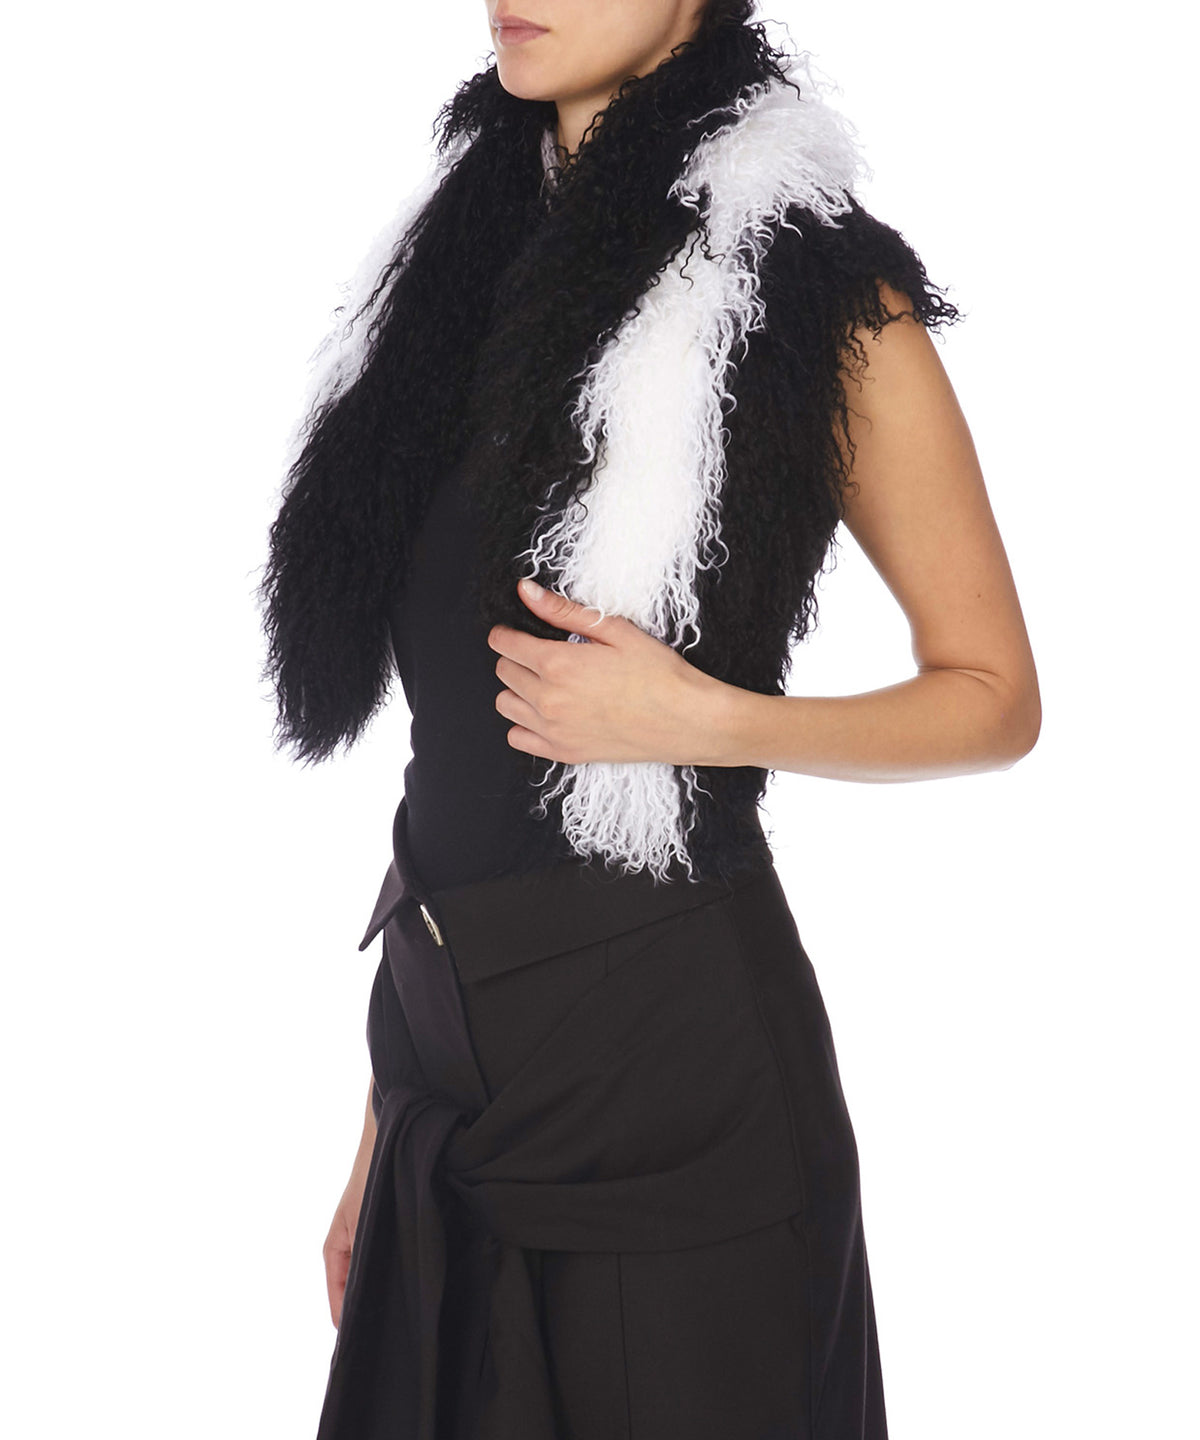 Charlotte Simone Candy Women Black and White Scarf